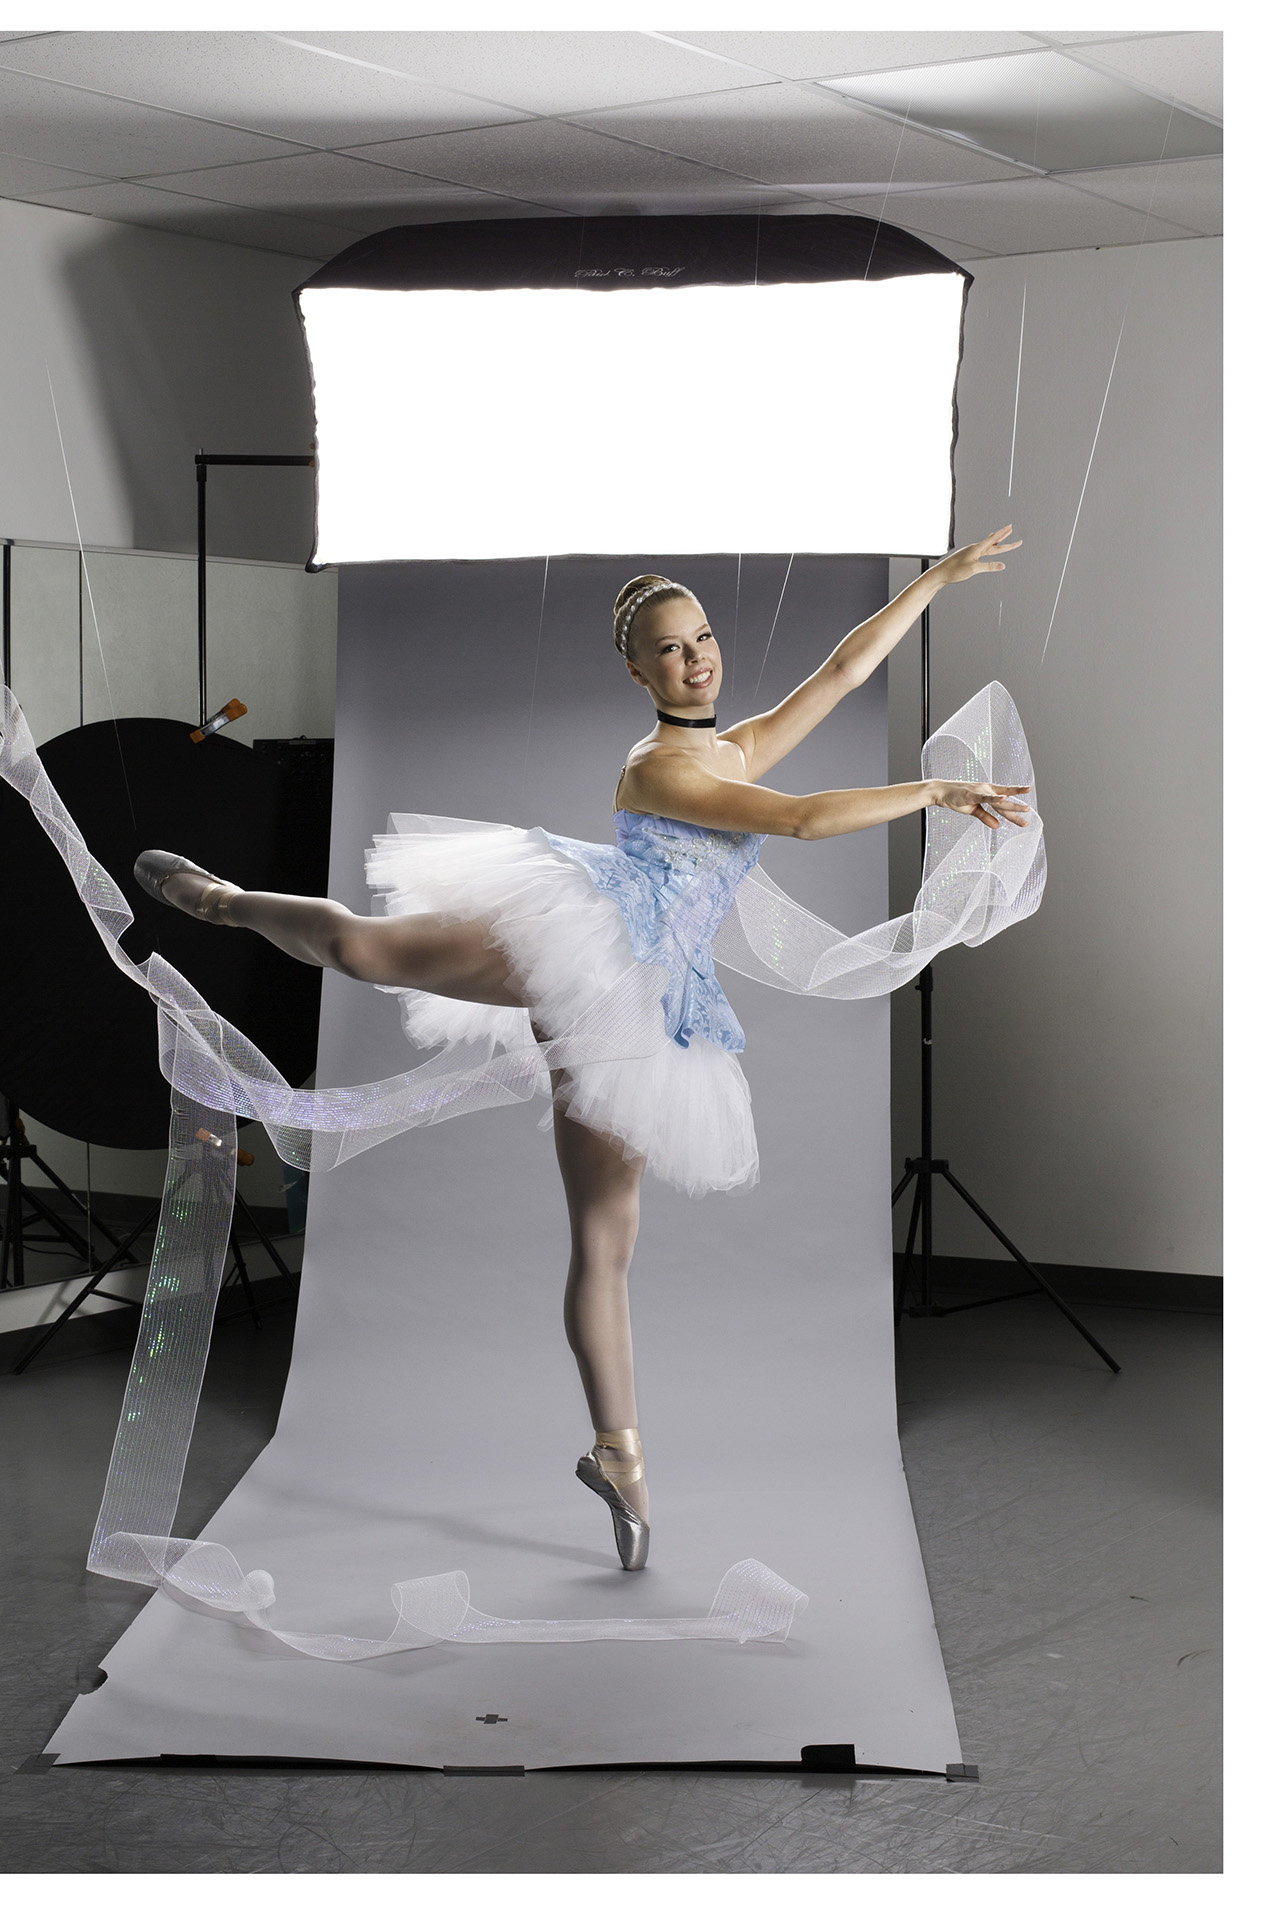 Ballerina dressed in Cinderella tutu poses in front of photo backdrop with tulle draped around her